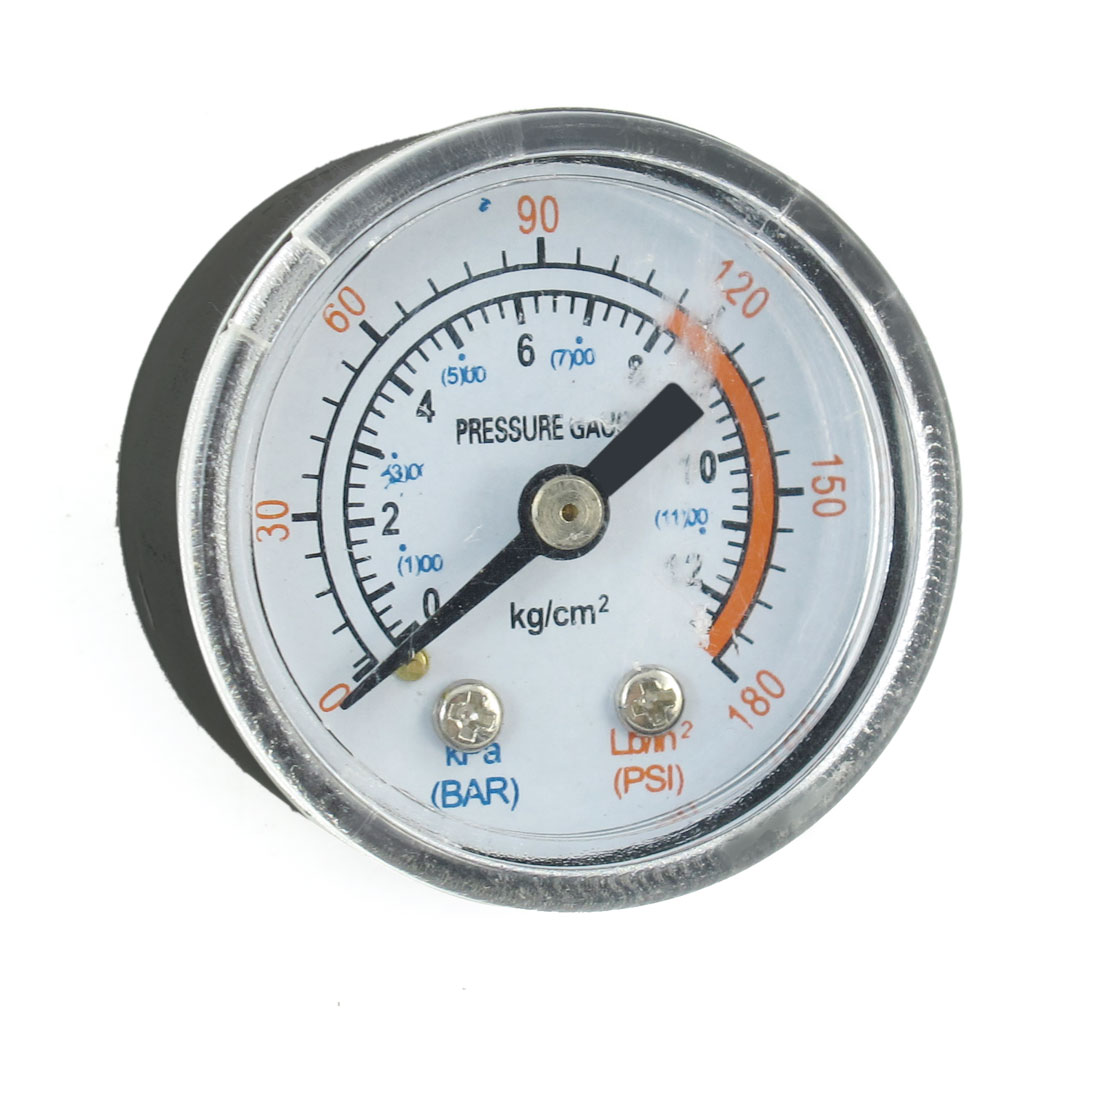 Air Compressor Fittings 12.5mm Dia Thread 12.5 Bar Pressure Gauge